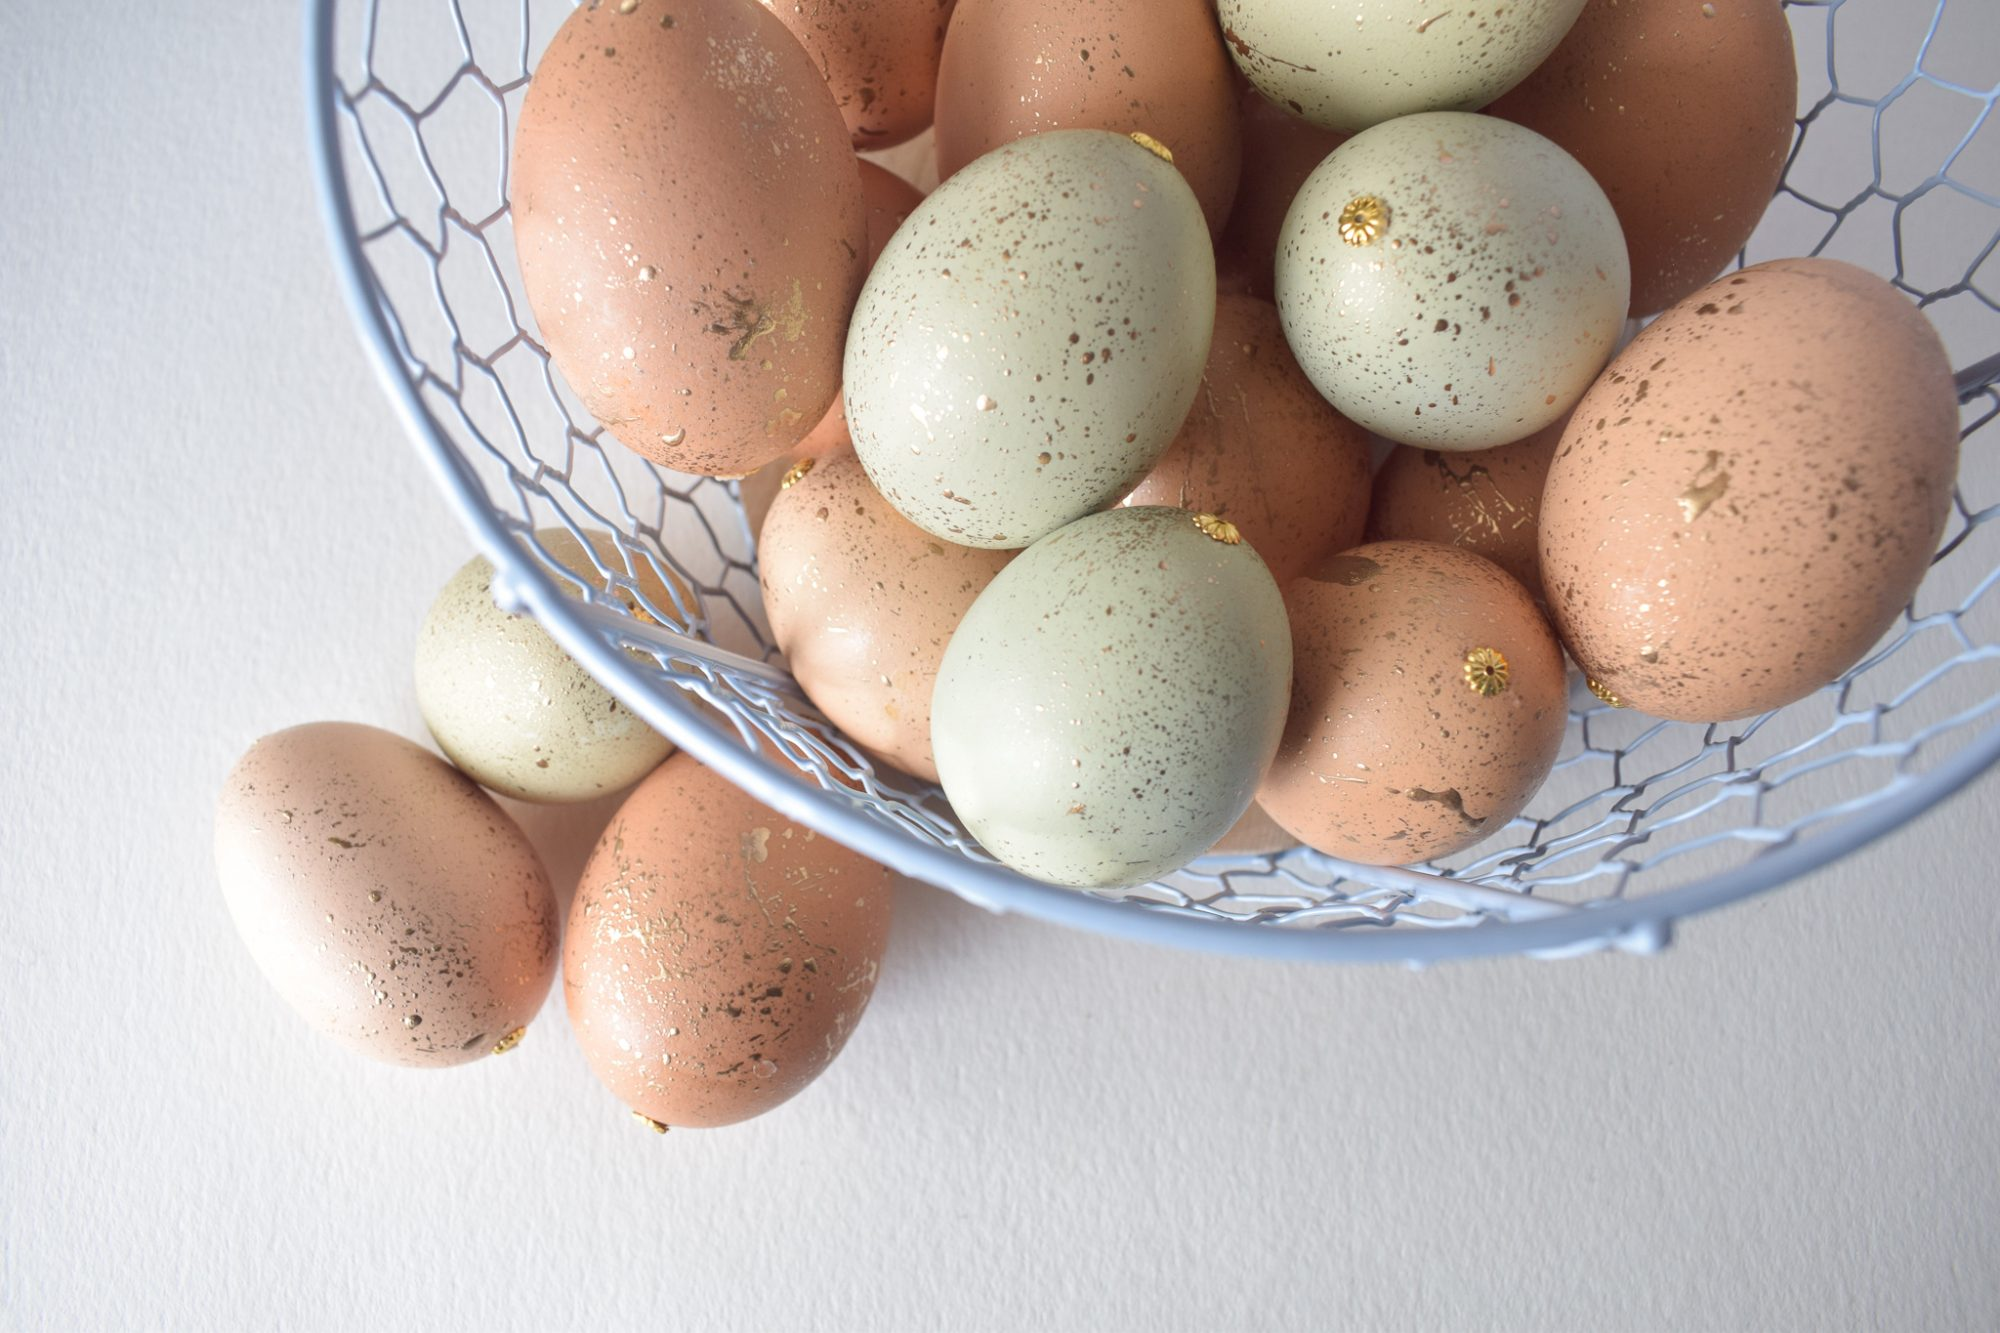 Gold Speckled Easter Eggs in Basket